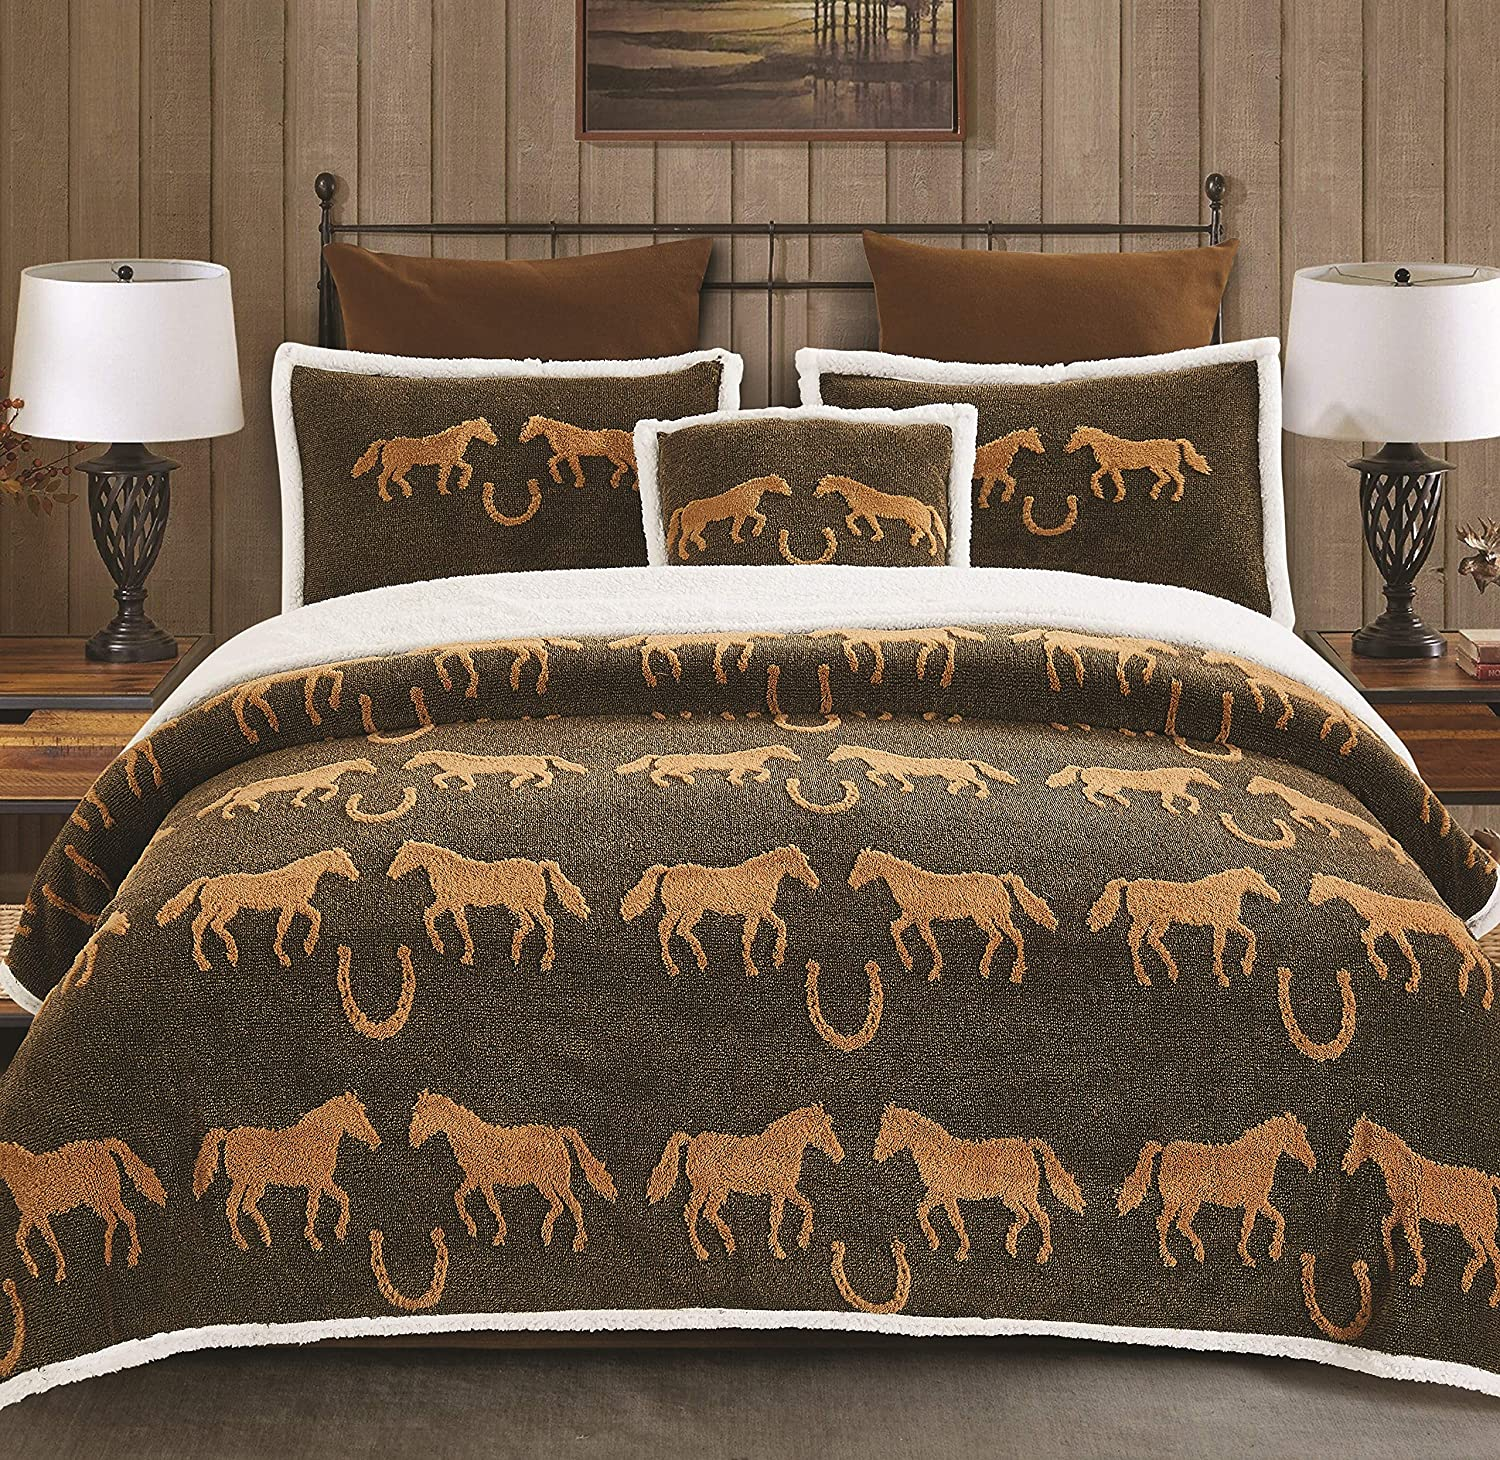 Virah Bella Horse and Horseshoe 4pc Comforter Blanket, Shams and Accent Pillow Set